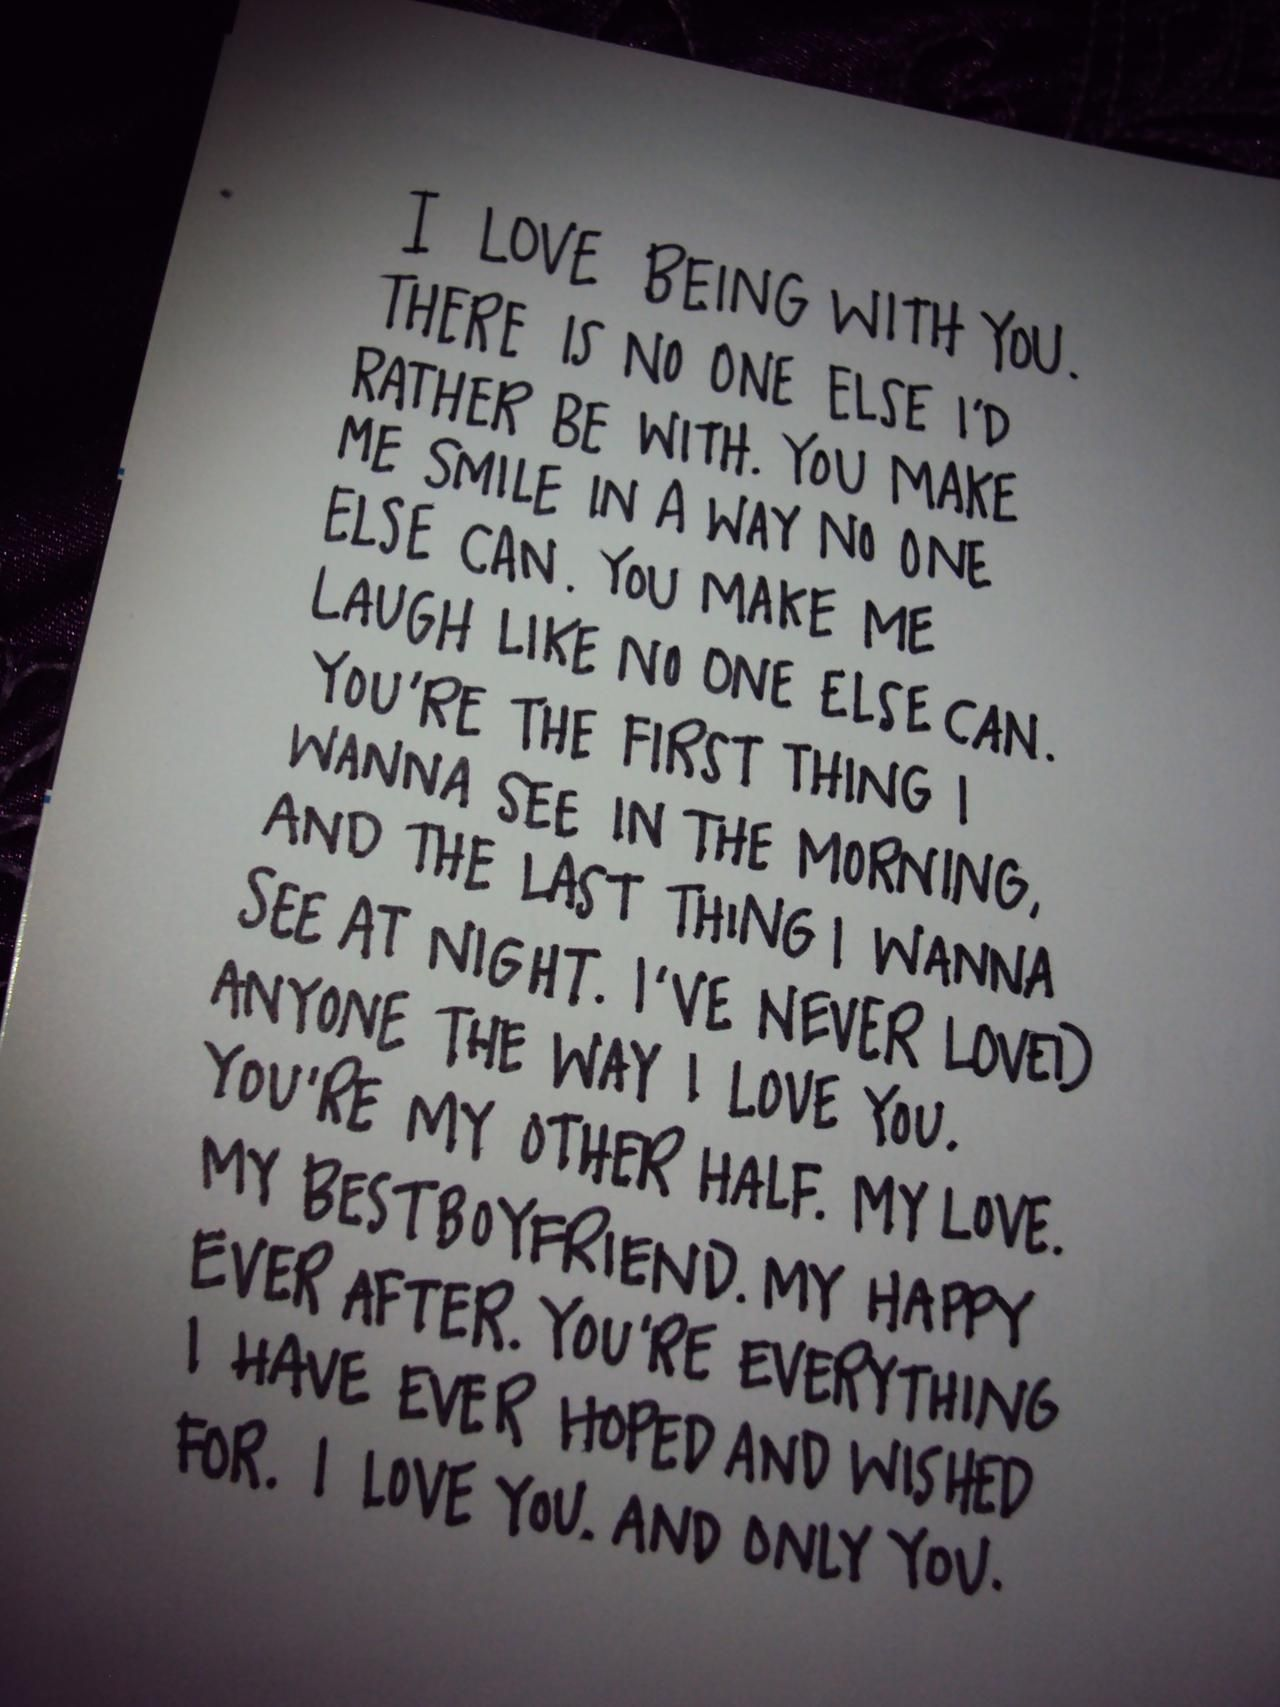 Feel like this with my boyfriend Love him so much Such a cute couple quote Wrote this down and gave it to him as a love letter never seen him so happy